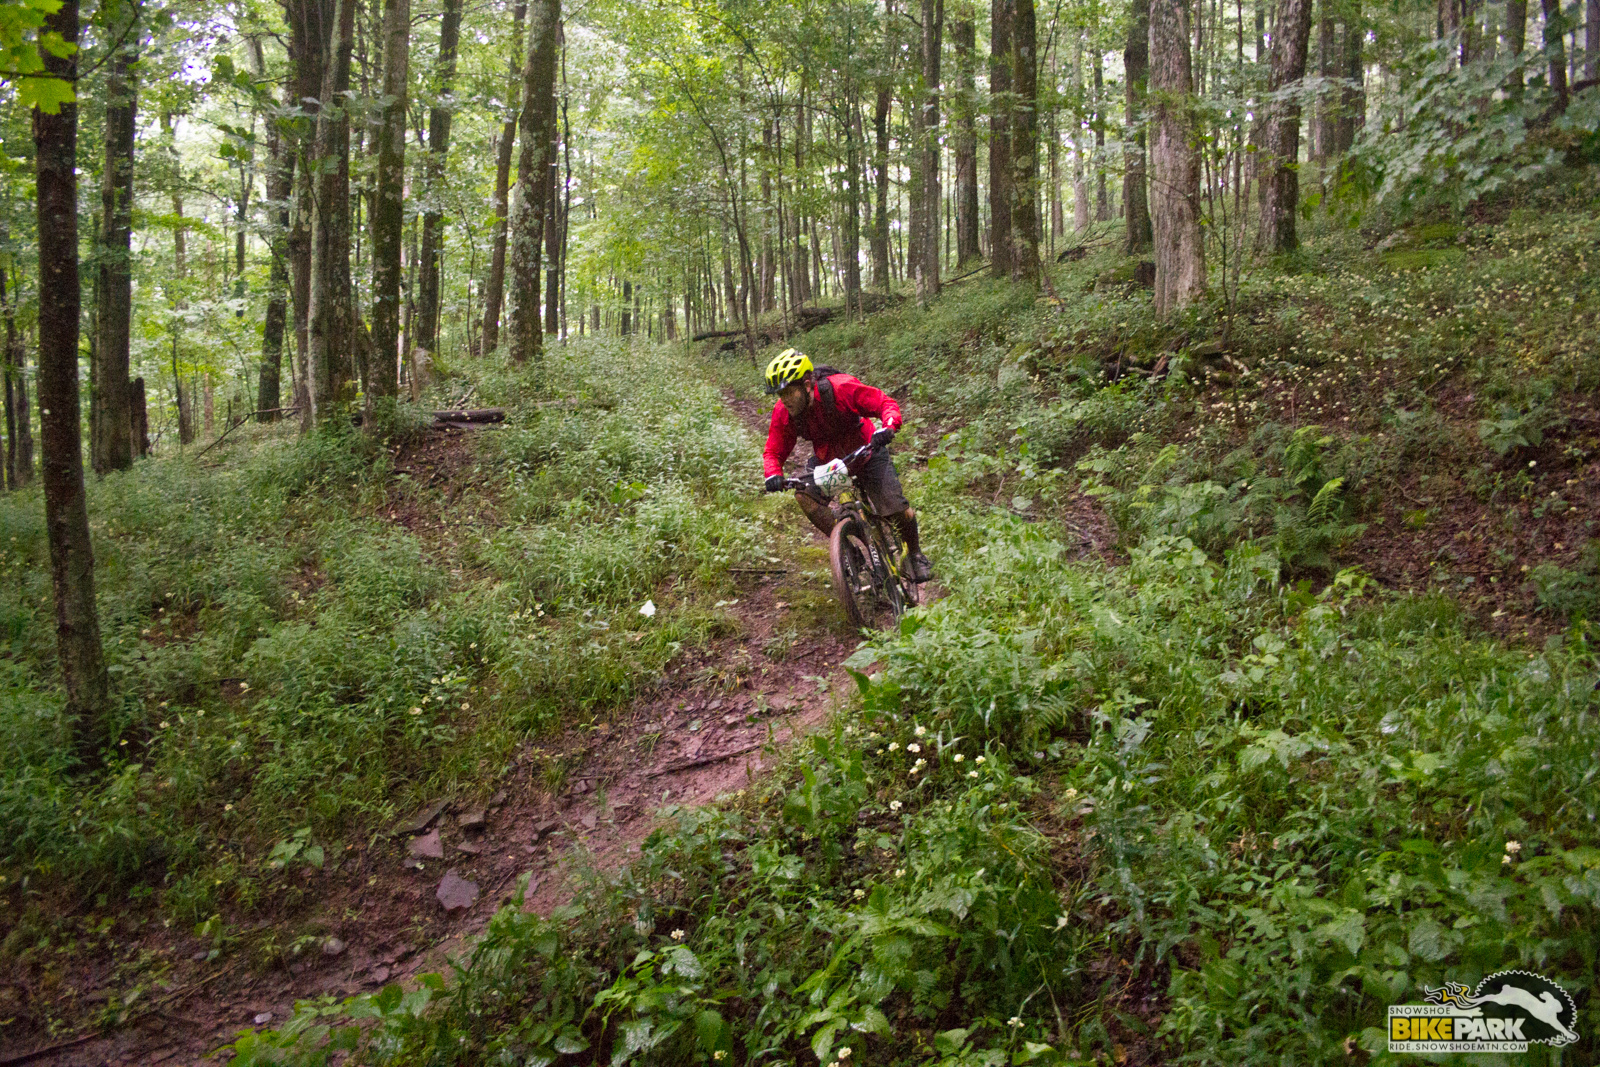 Duane Swanson III on stage 7 in route to taking the overall in the hardtail class.